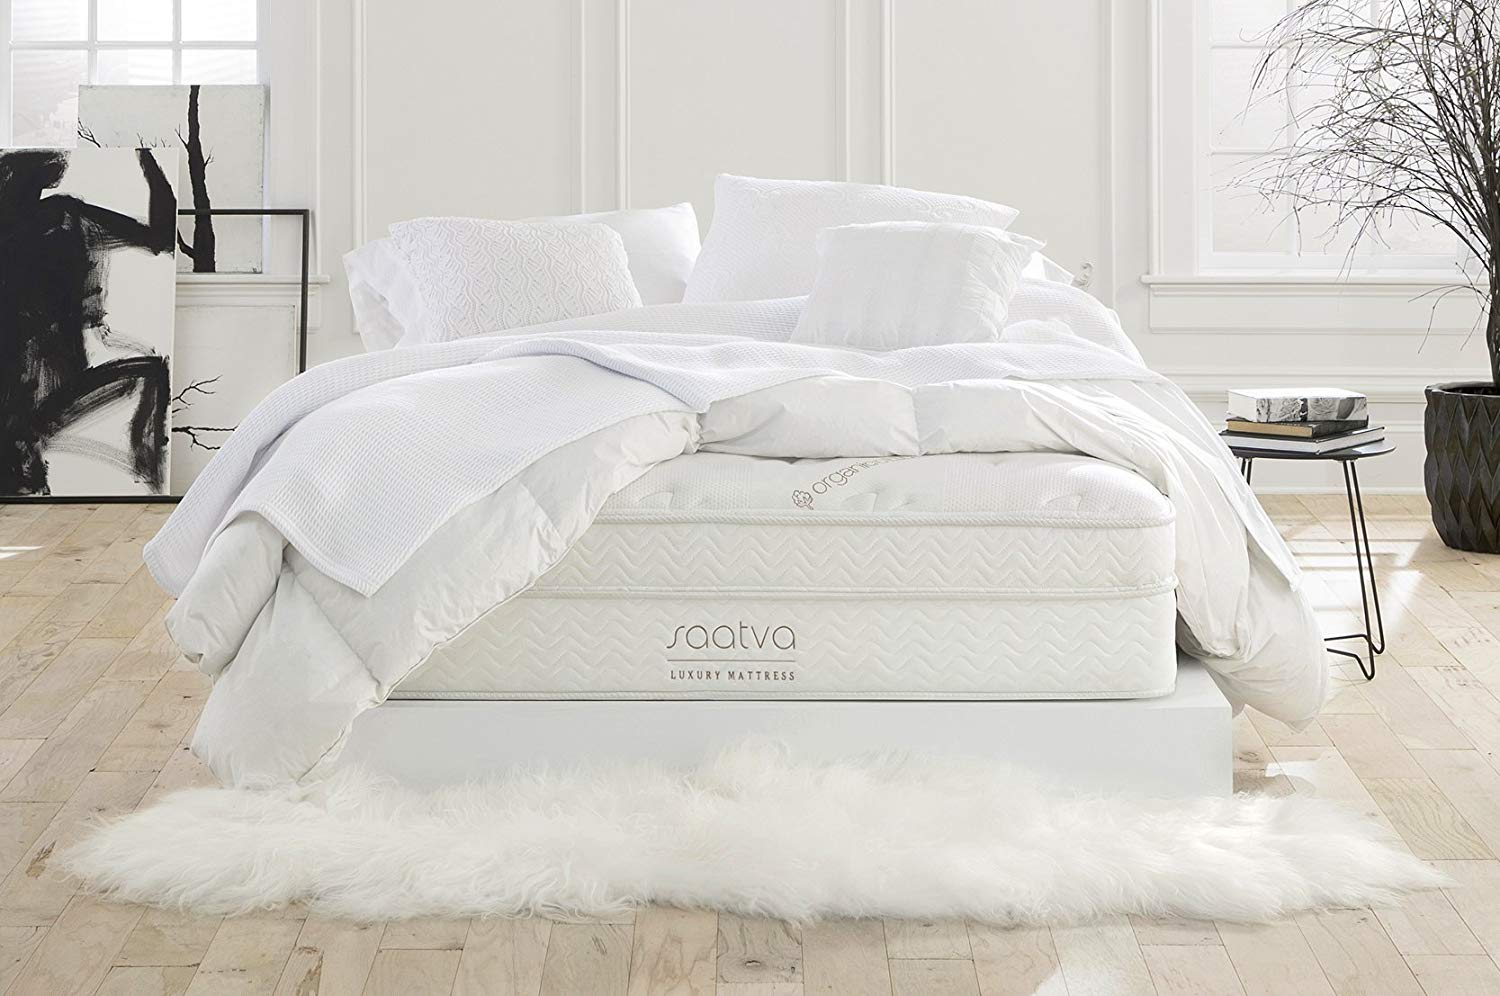 best mattress for sex 2021 review with